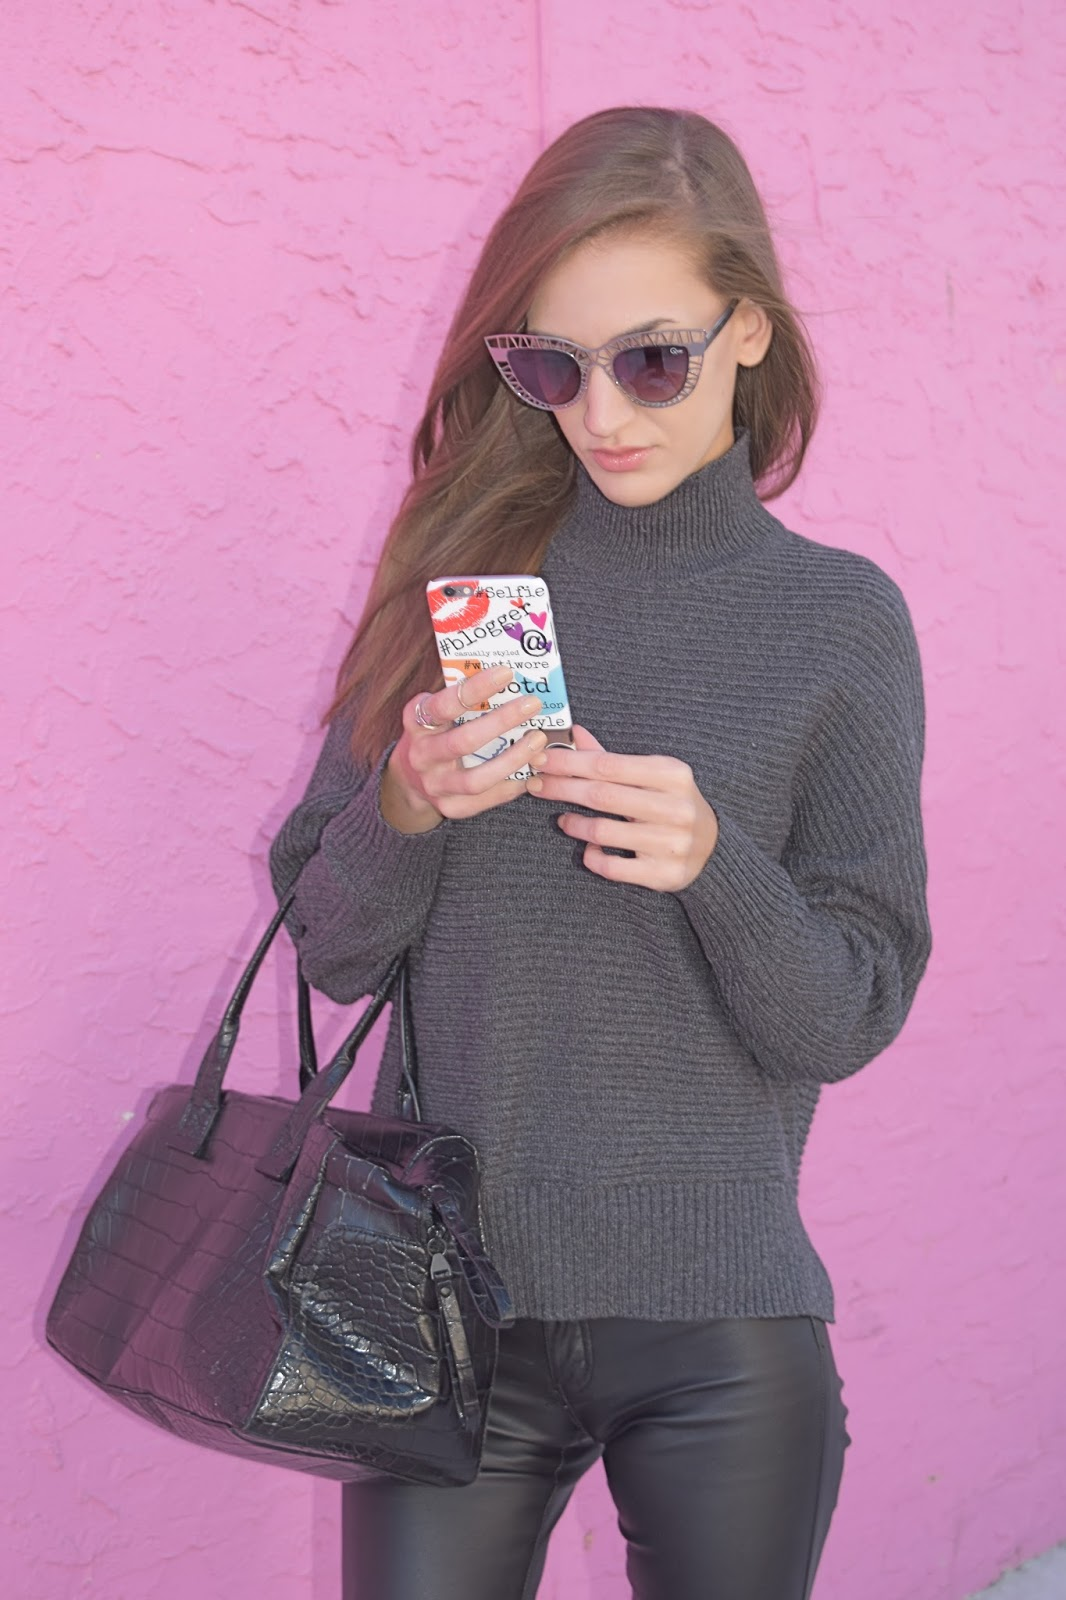 Loft Grey Knit oversized sweater, Case App Custom made phone case, Blank Denim Vegan Leather pants